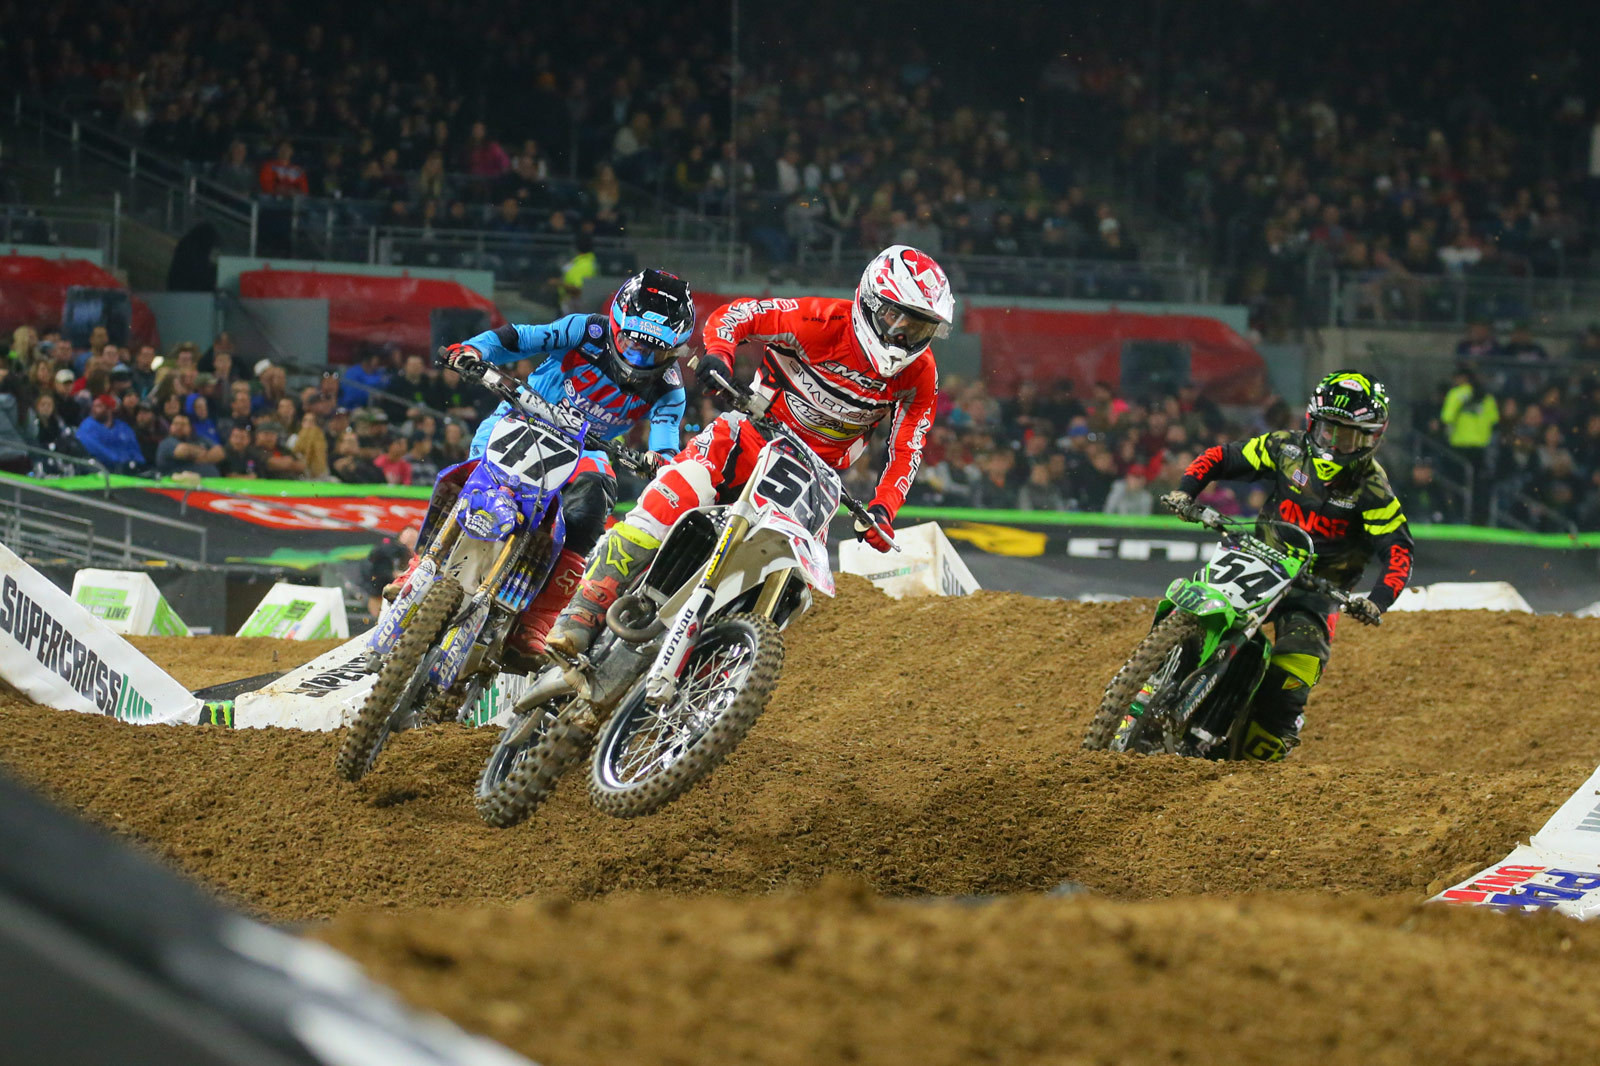 Vince Friese, Tommy Hahn, and Wil Hahn - Photo Blast: San Diego 2 - Motocross Pictures - Vital MX